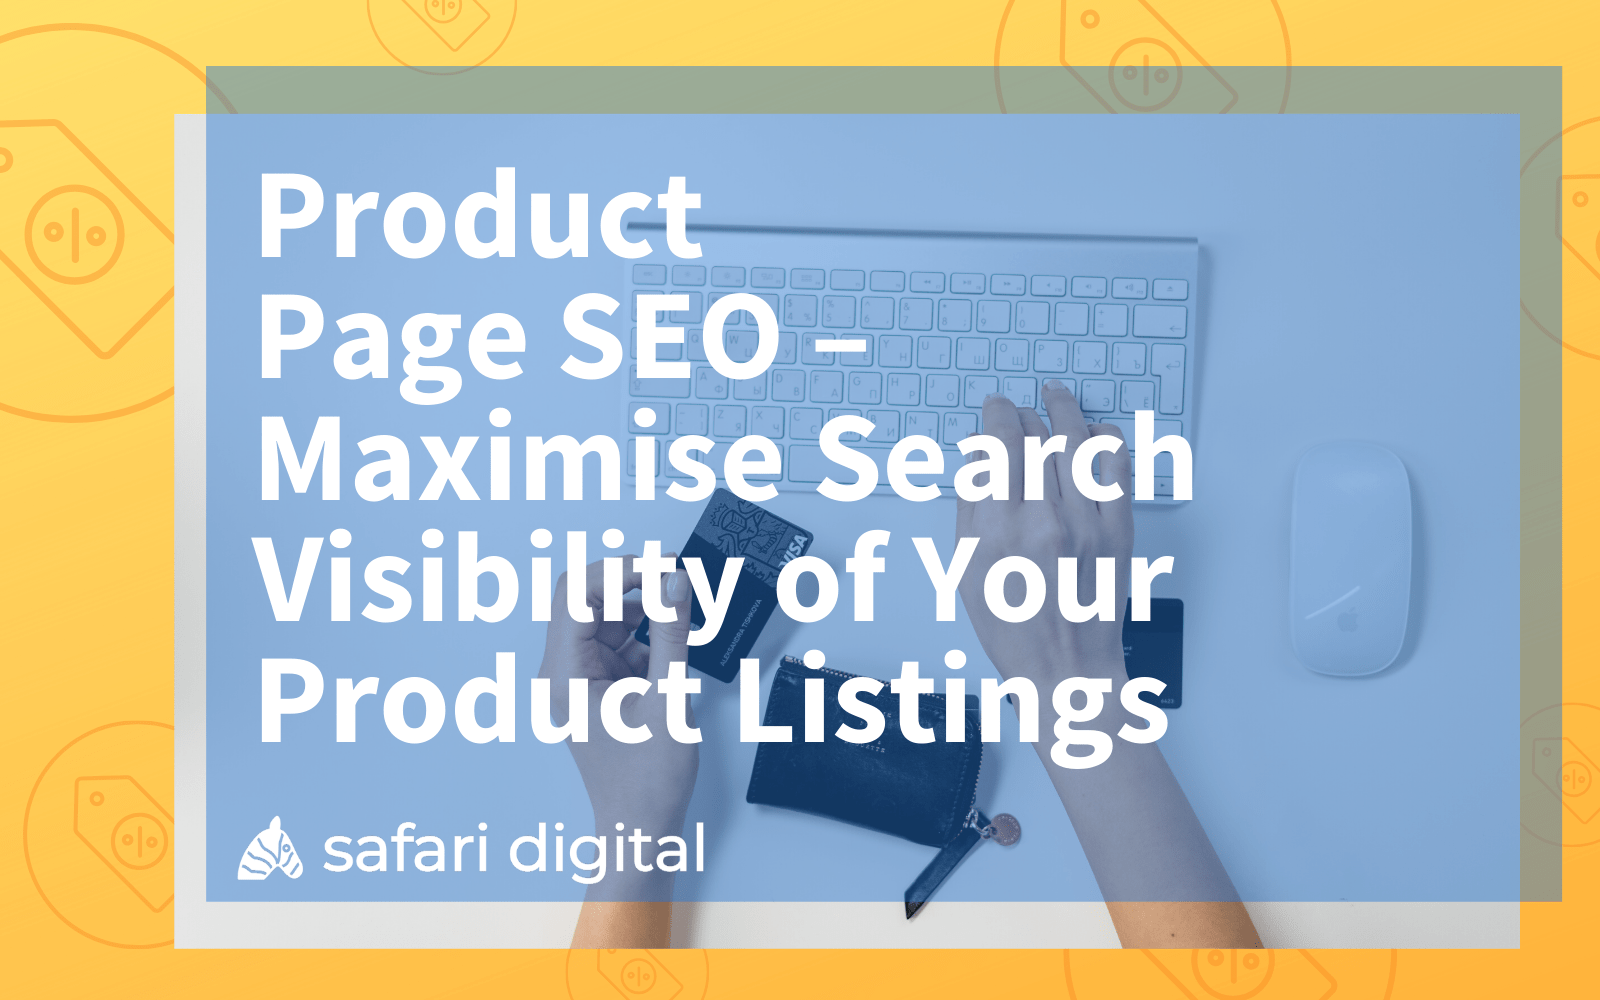 product page seo guide cover image